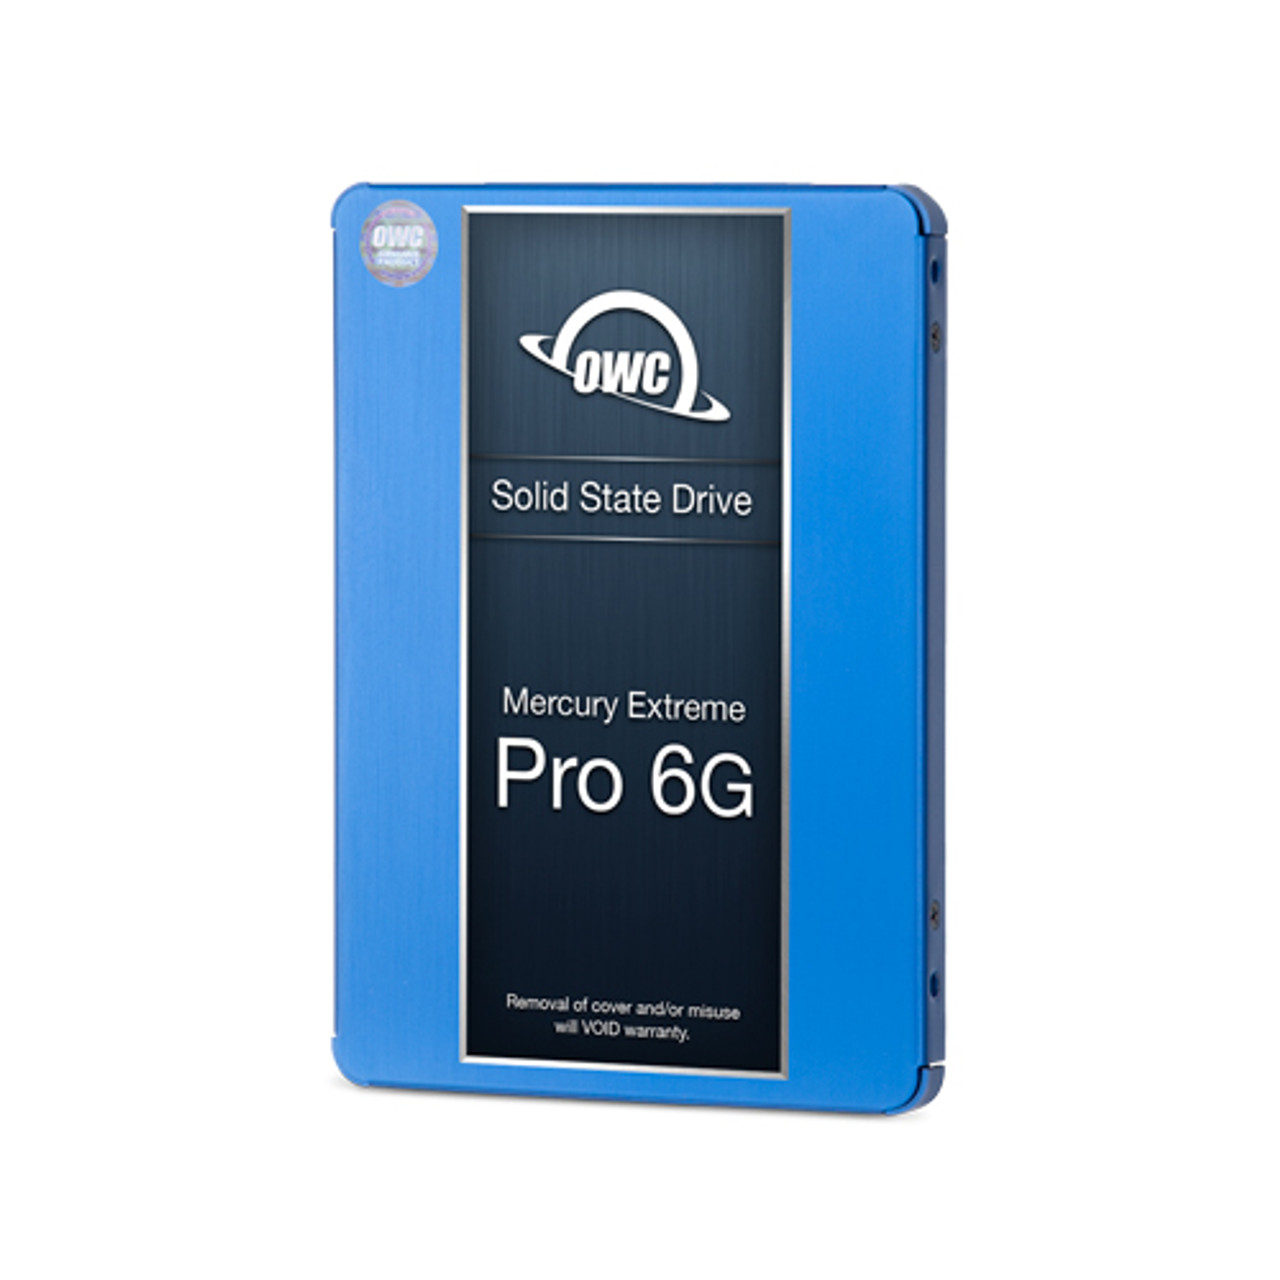 2TB OWC Mercury Extreme 6G SSD and HDD DIY Bundle Kit (for 27-inch iMac 2012 and later)